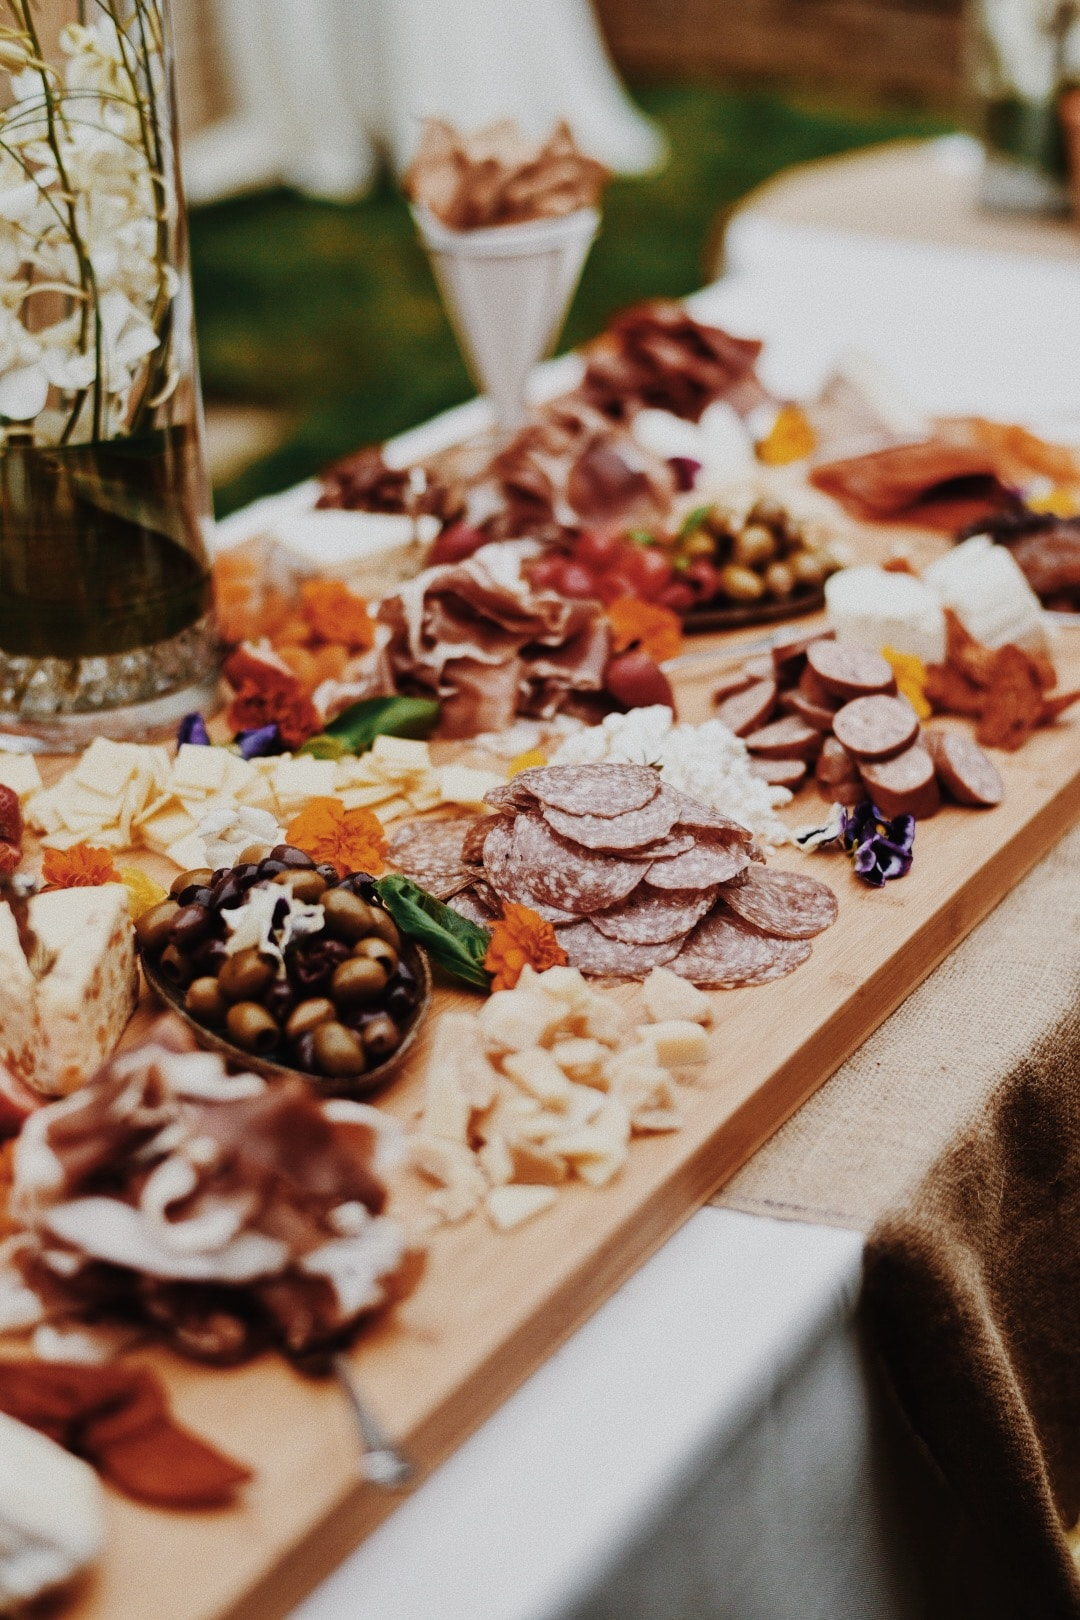 table full of food at an event